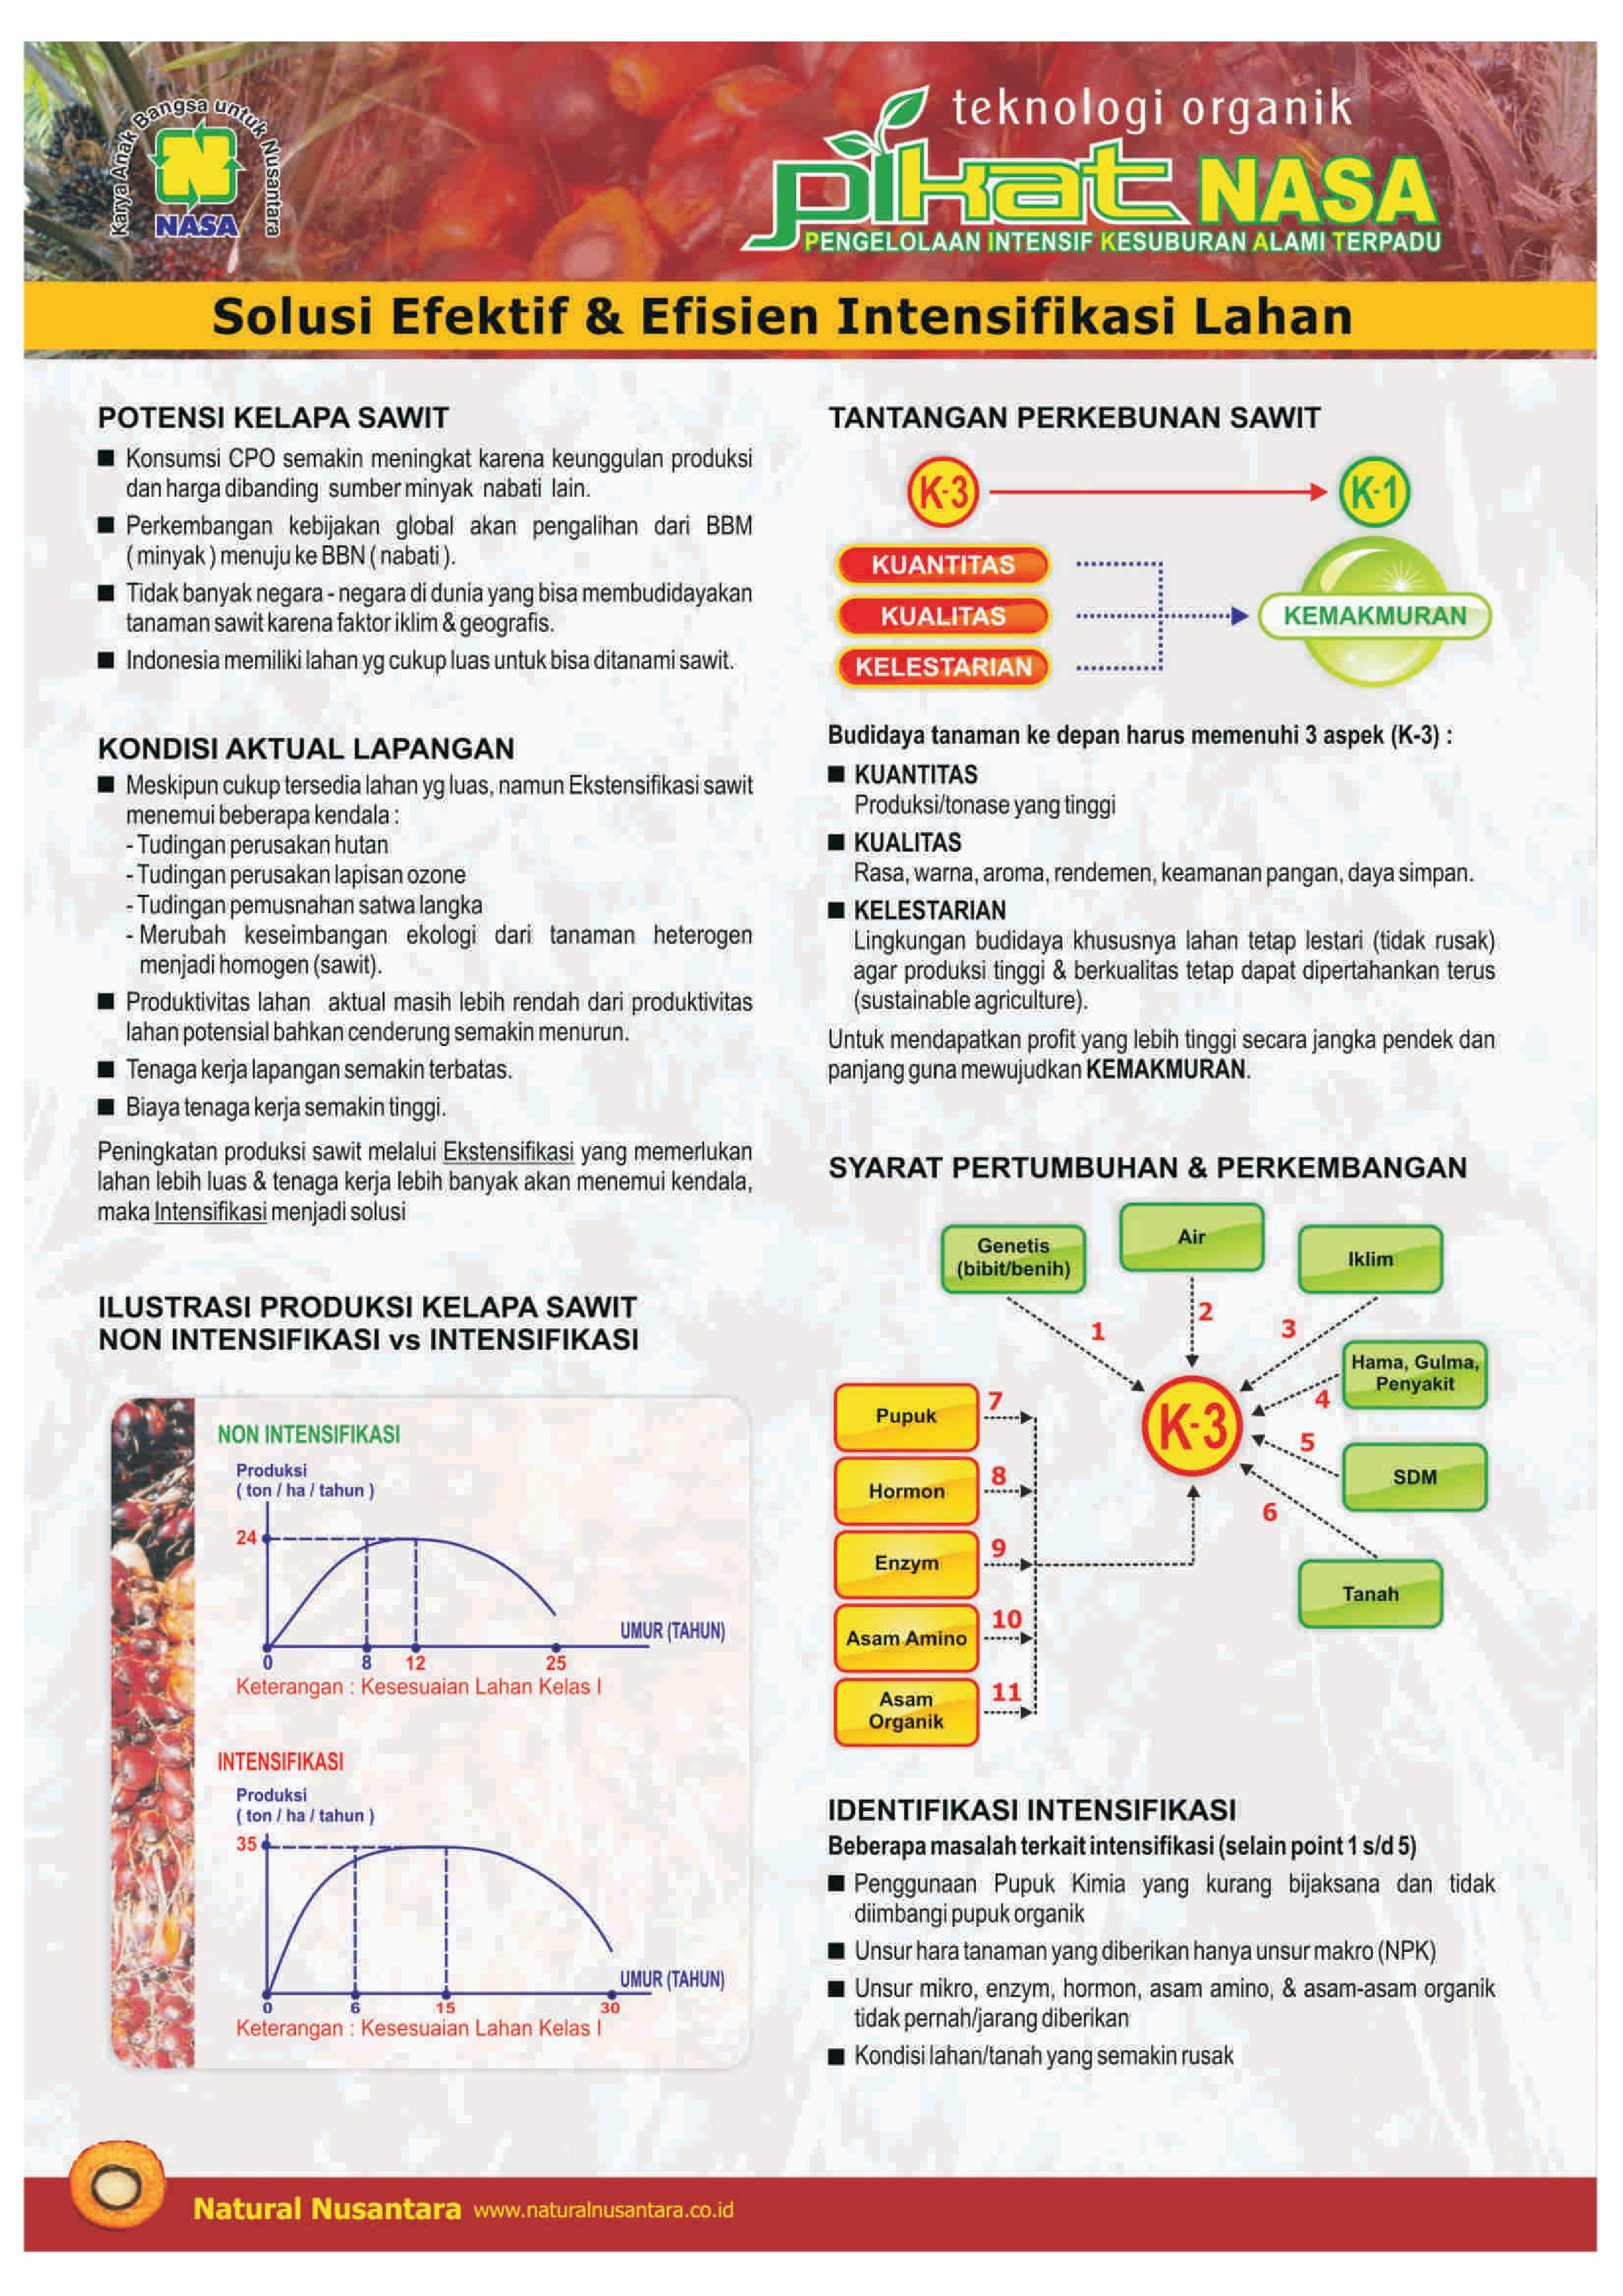 proposal-sawit-pt-nasa-page-002